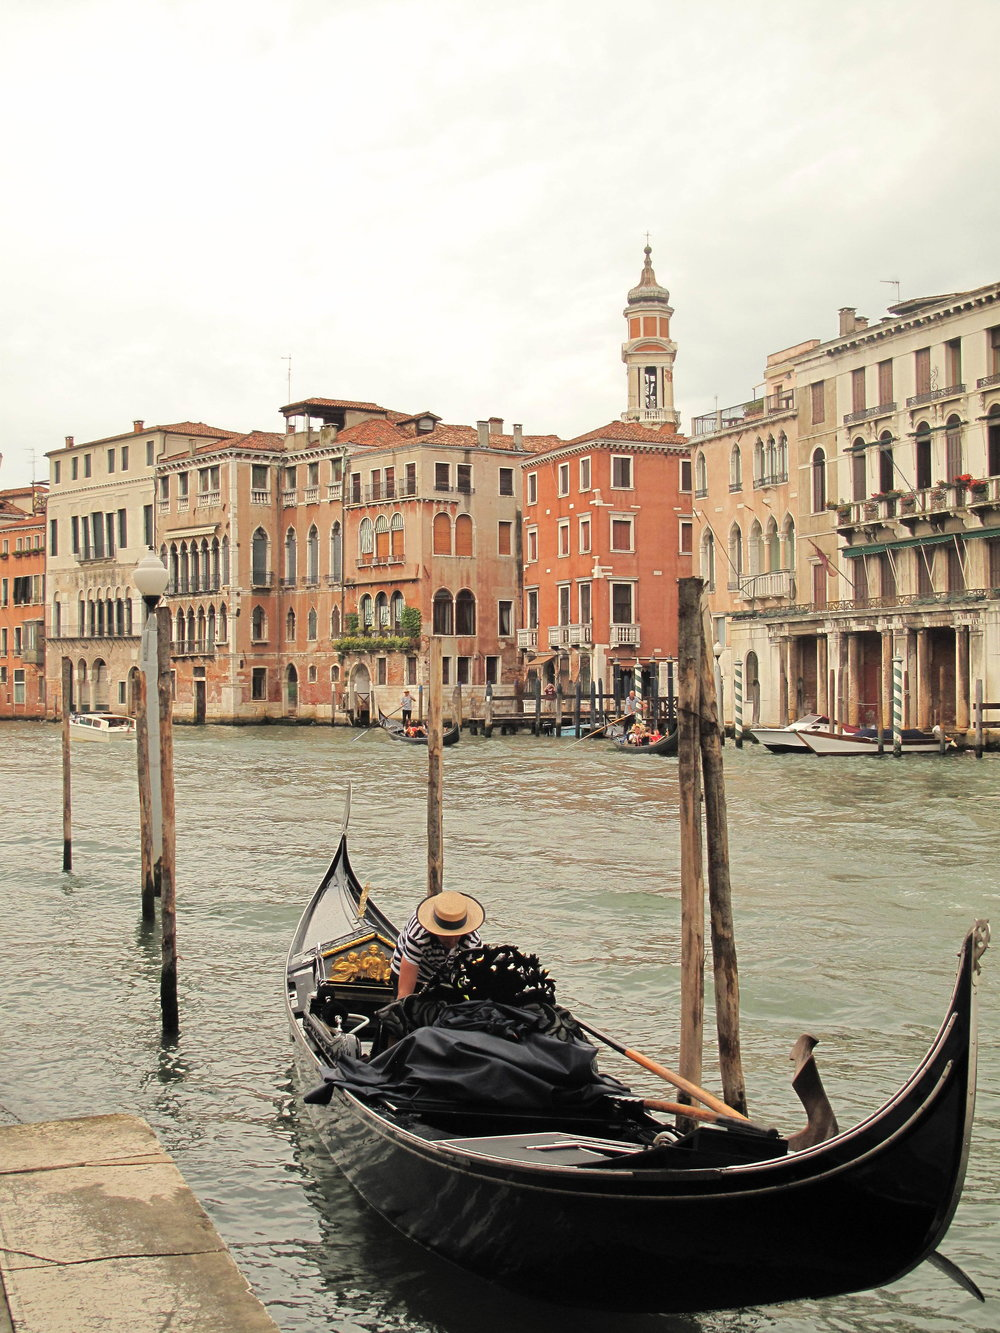 Couldn't go on a gondola ride in Venice, because I'd throw up